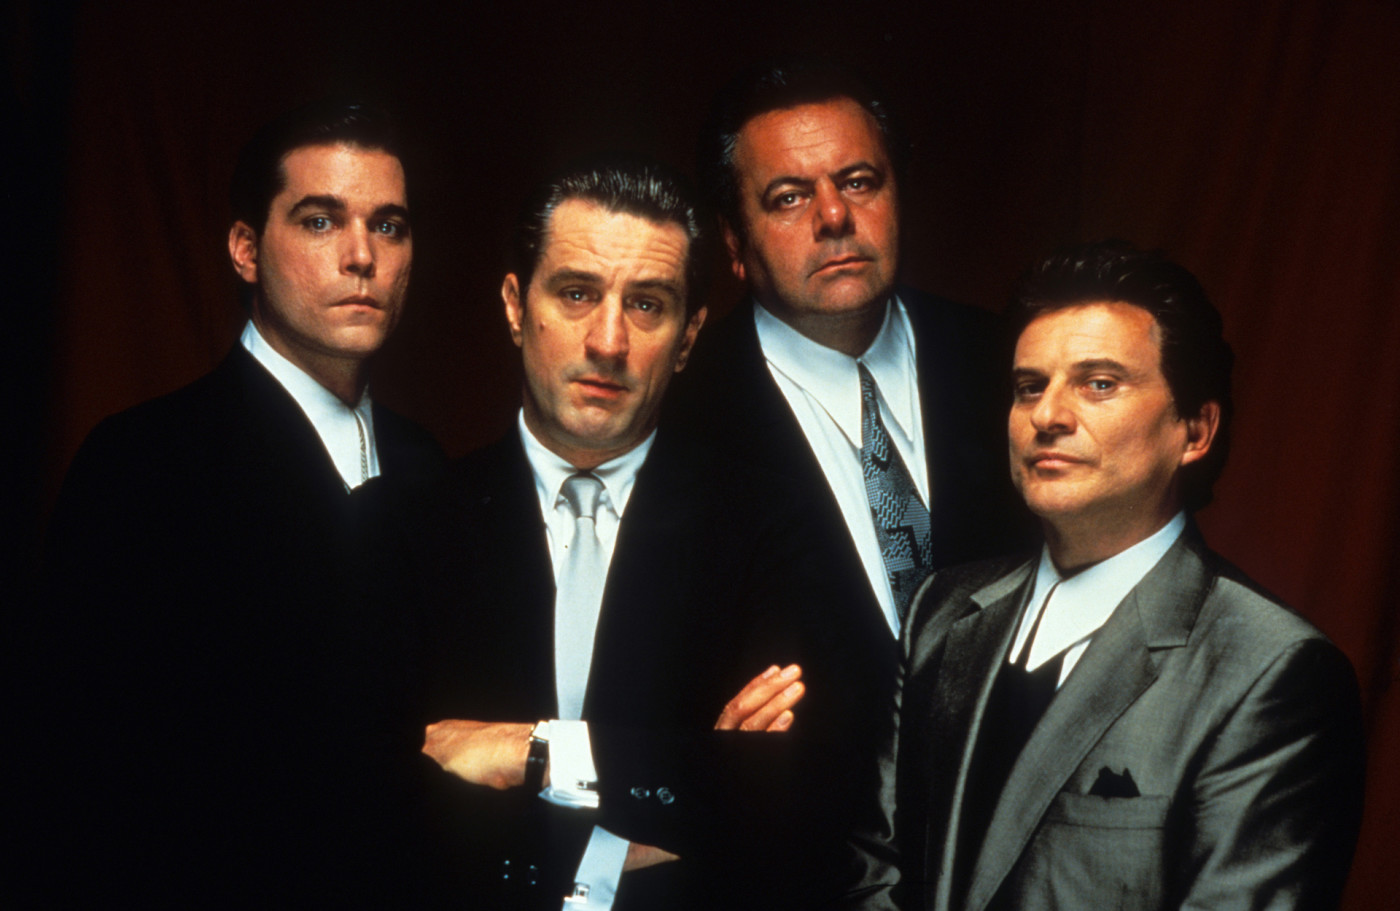 Ray Liotta, Robert De Niro, Paul Sorvino, and Joe Pesci publicity portrait for the film 'Goodfellas'